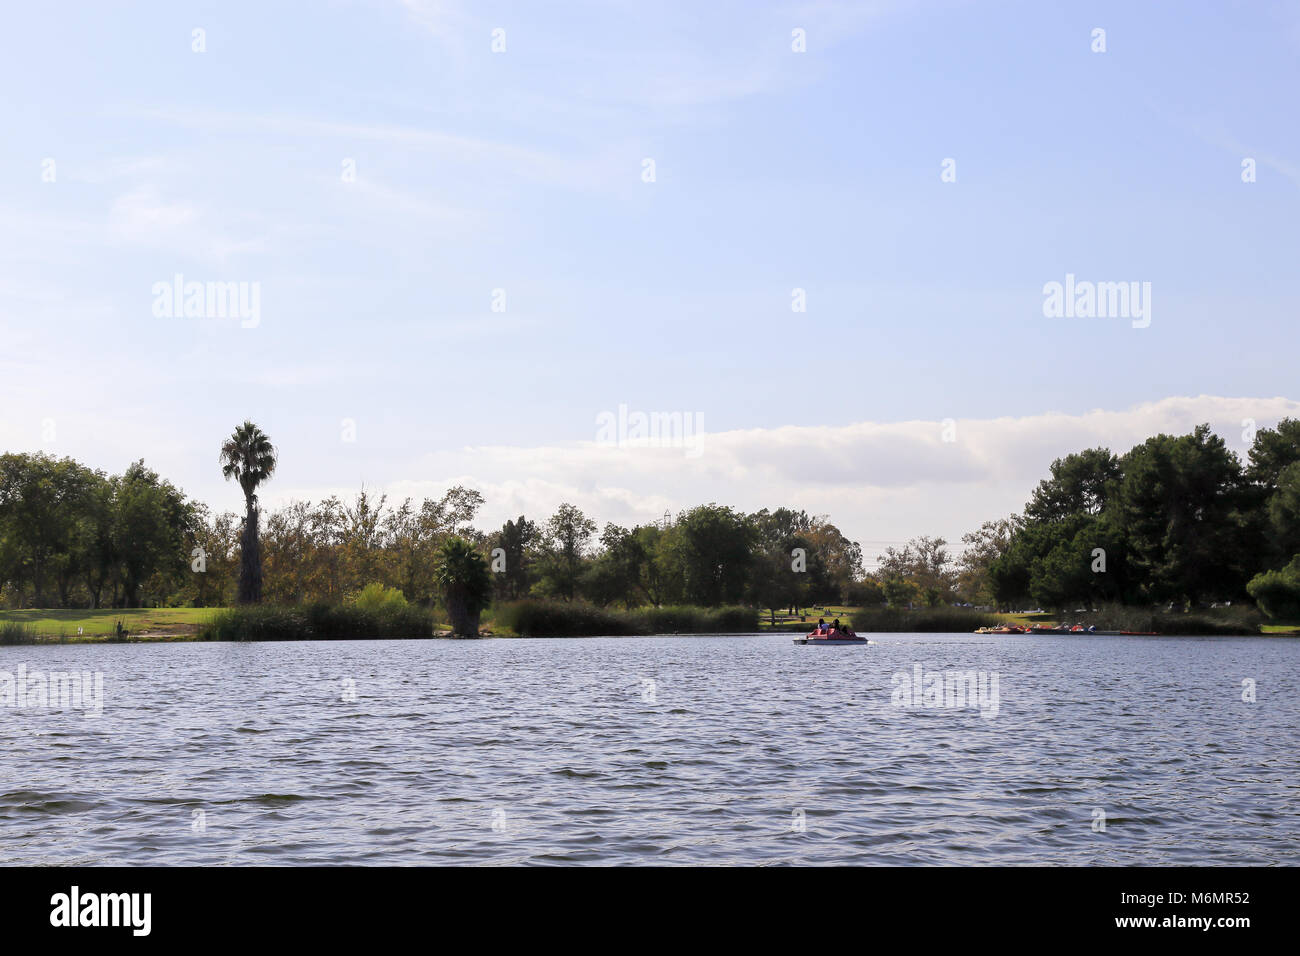 Pedal boating in a lake at El Dorado East Regional Park, Long Beach California on a sunny afternoon, Stock Photo